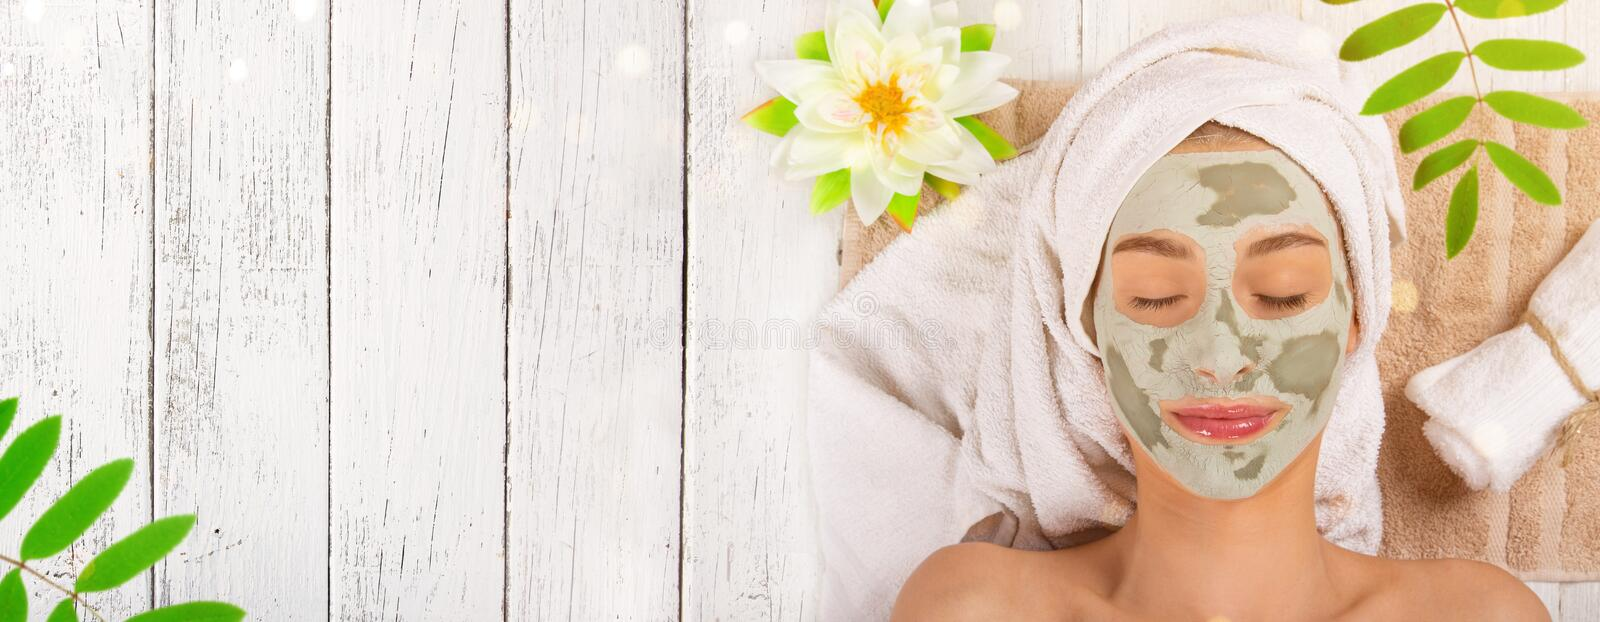 Young healthy woman with face mask. royalty free stock image